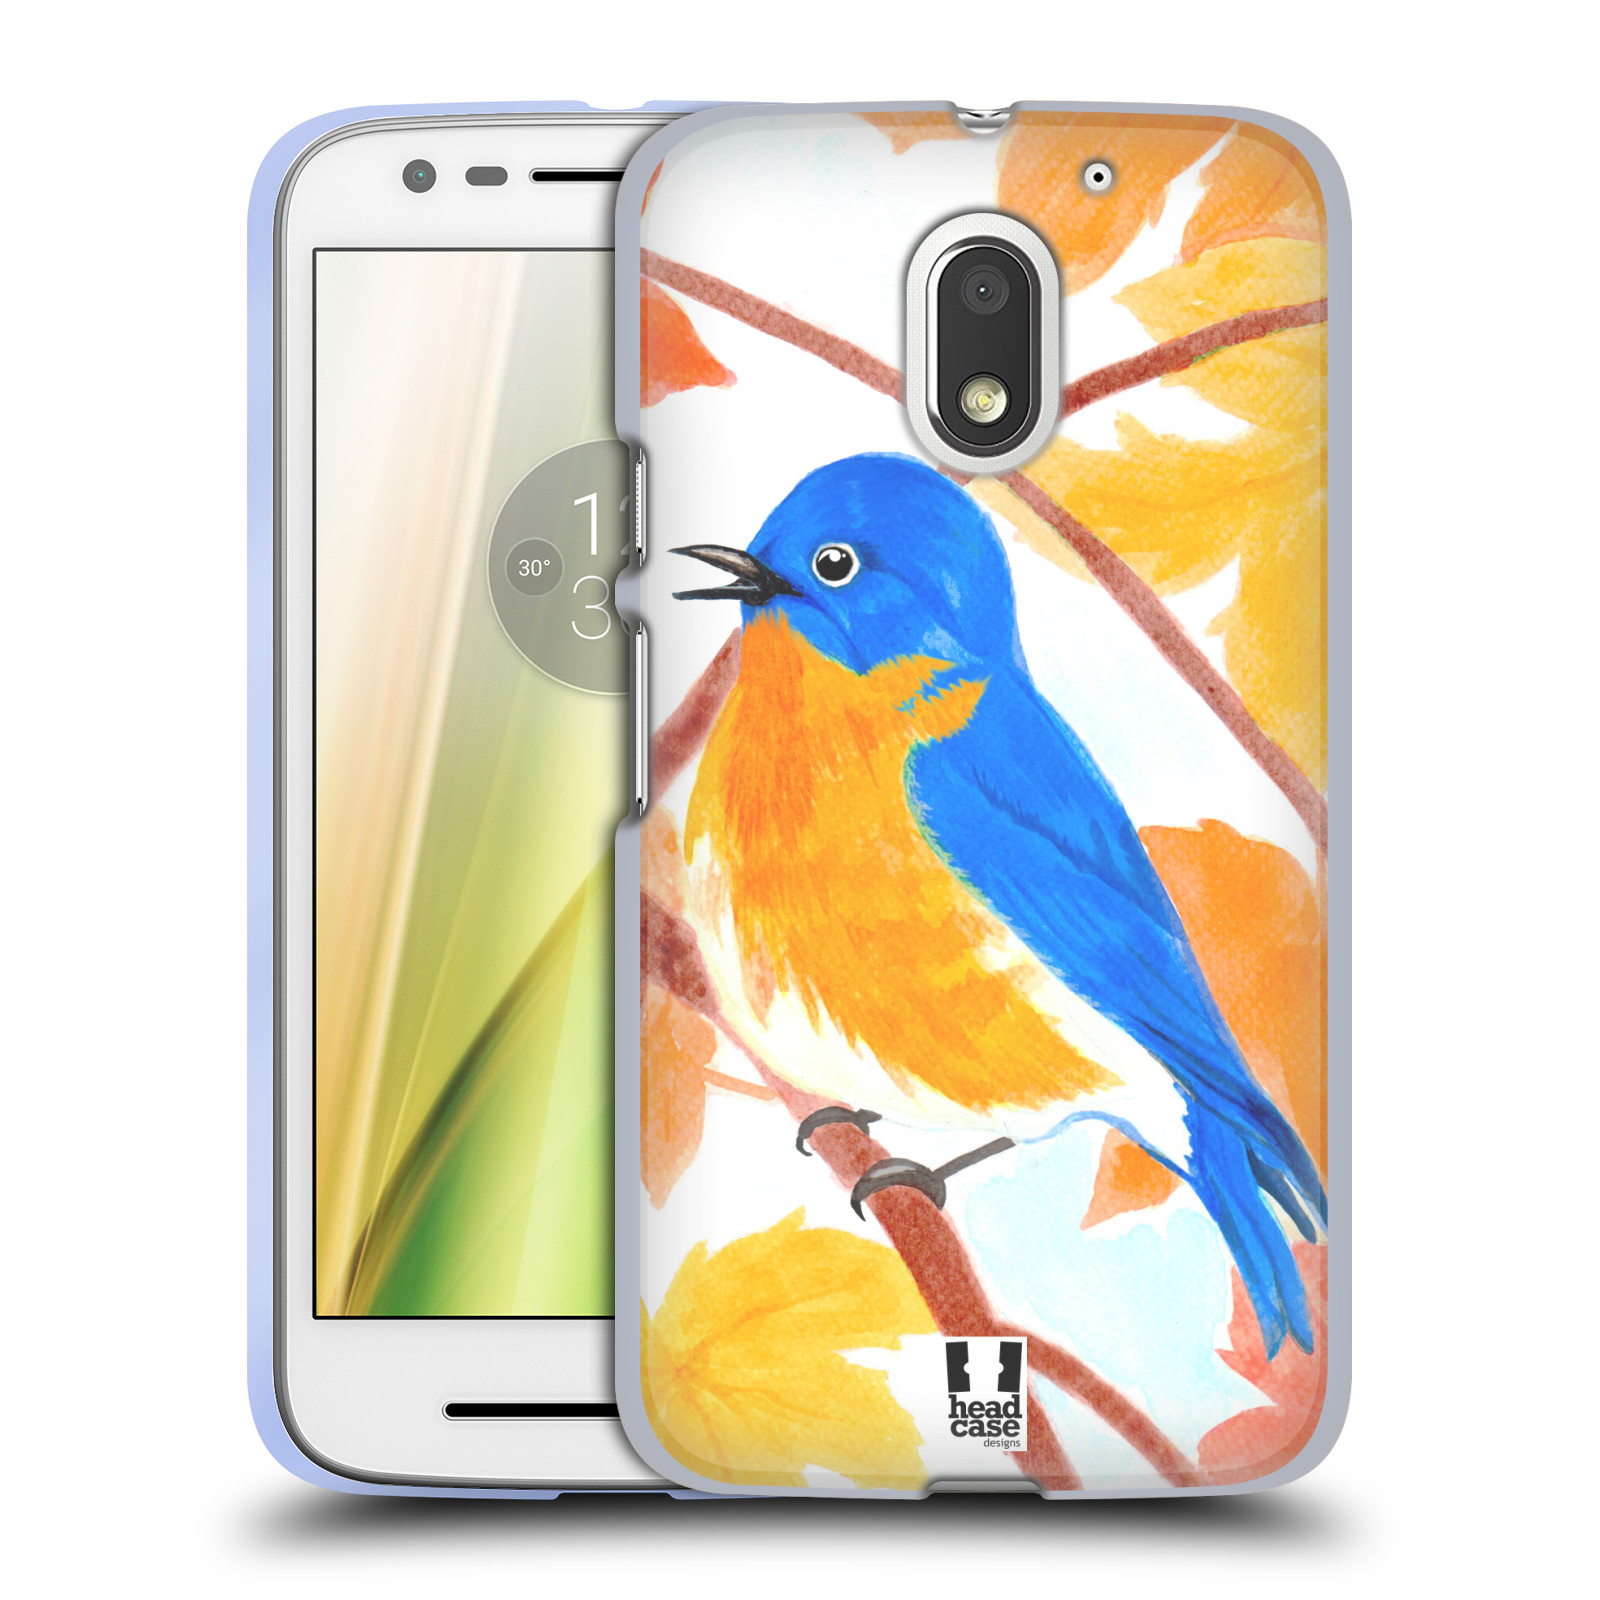 HEAD-CASE-DESIGNS-AUTUMN-BIRDS-SOFT-GEL-CASE-FOR-MOTOROLA-MOTO-E3-POWER